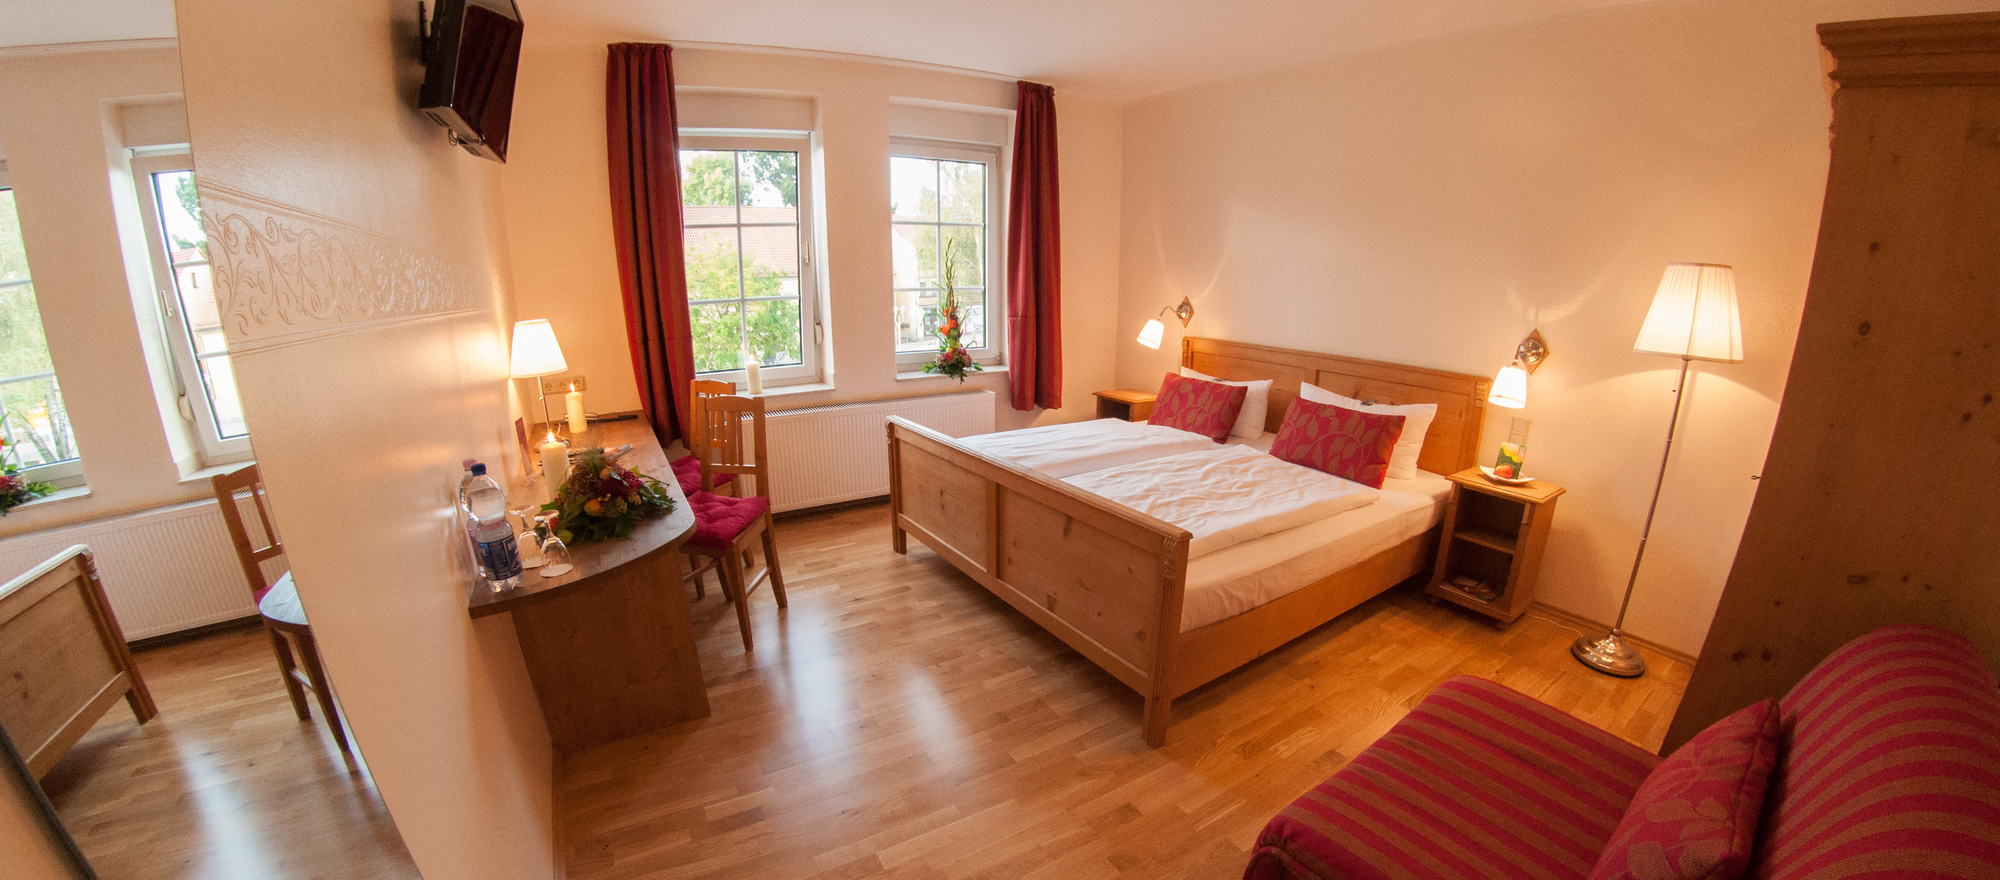 Comfortable double rooms at the the Ringhotel Lutherhotel Eisenacher Hof in Eisenach, 4 star hotel in Thuringian Forest